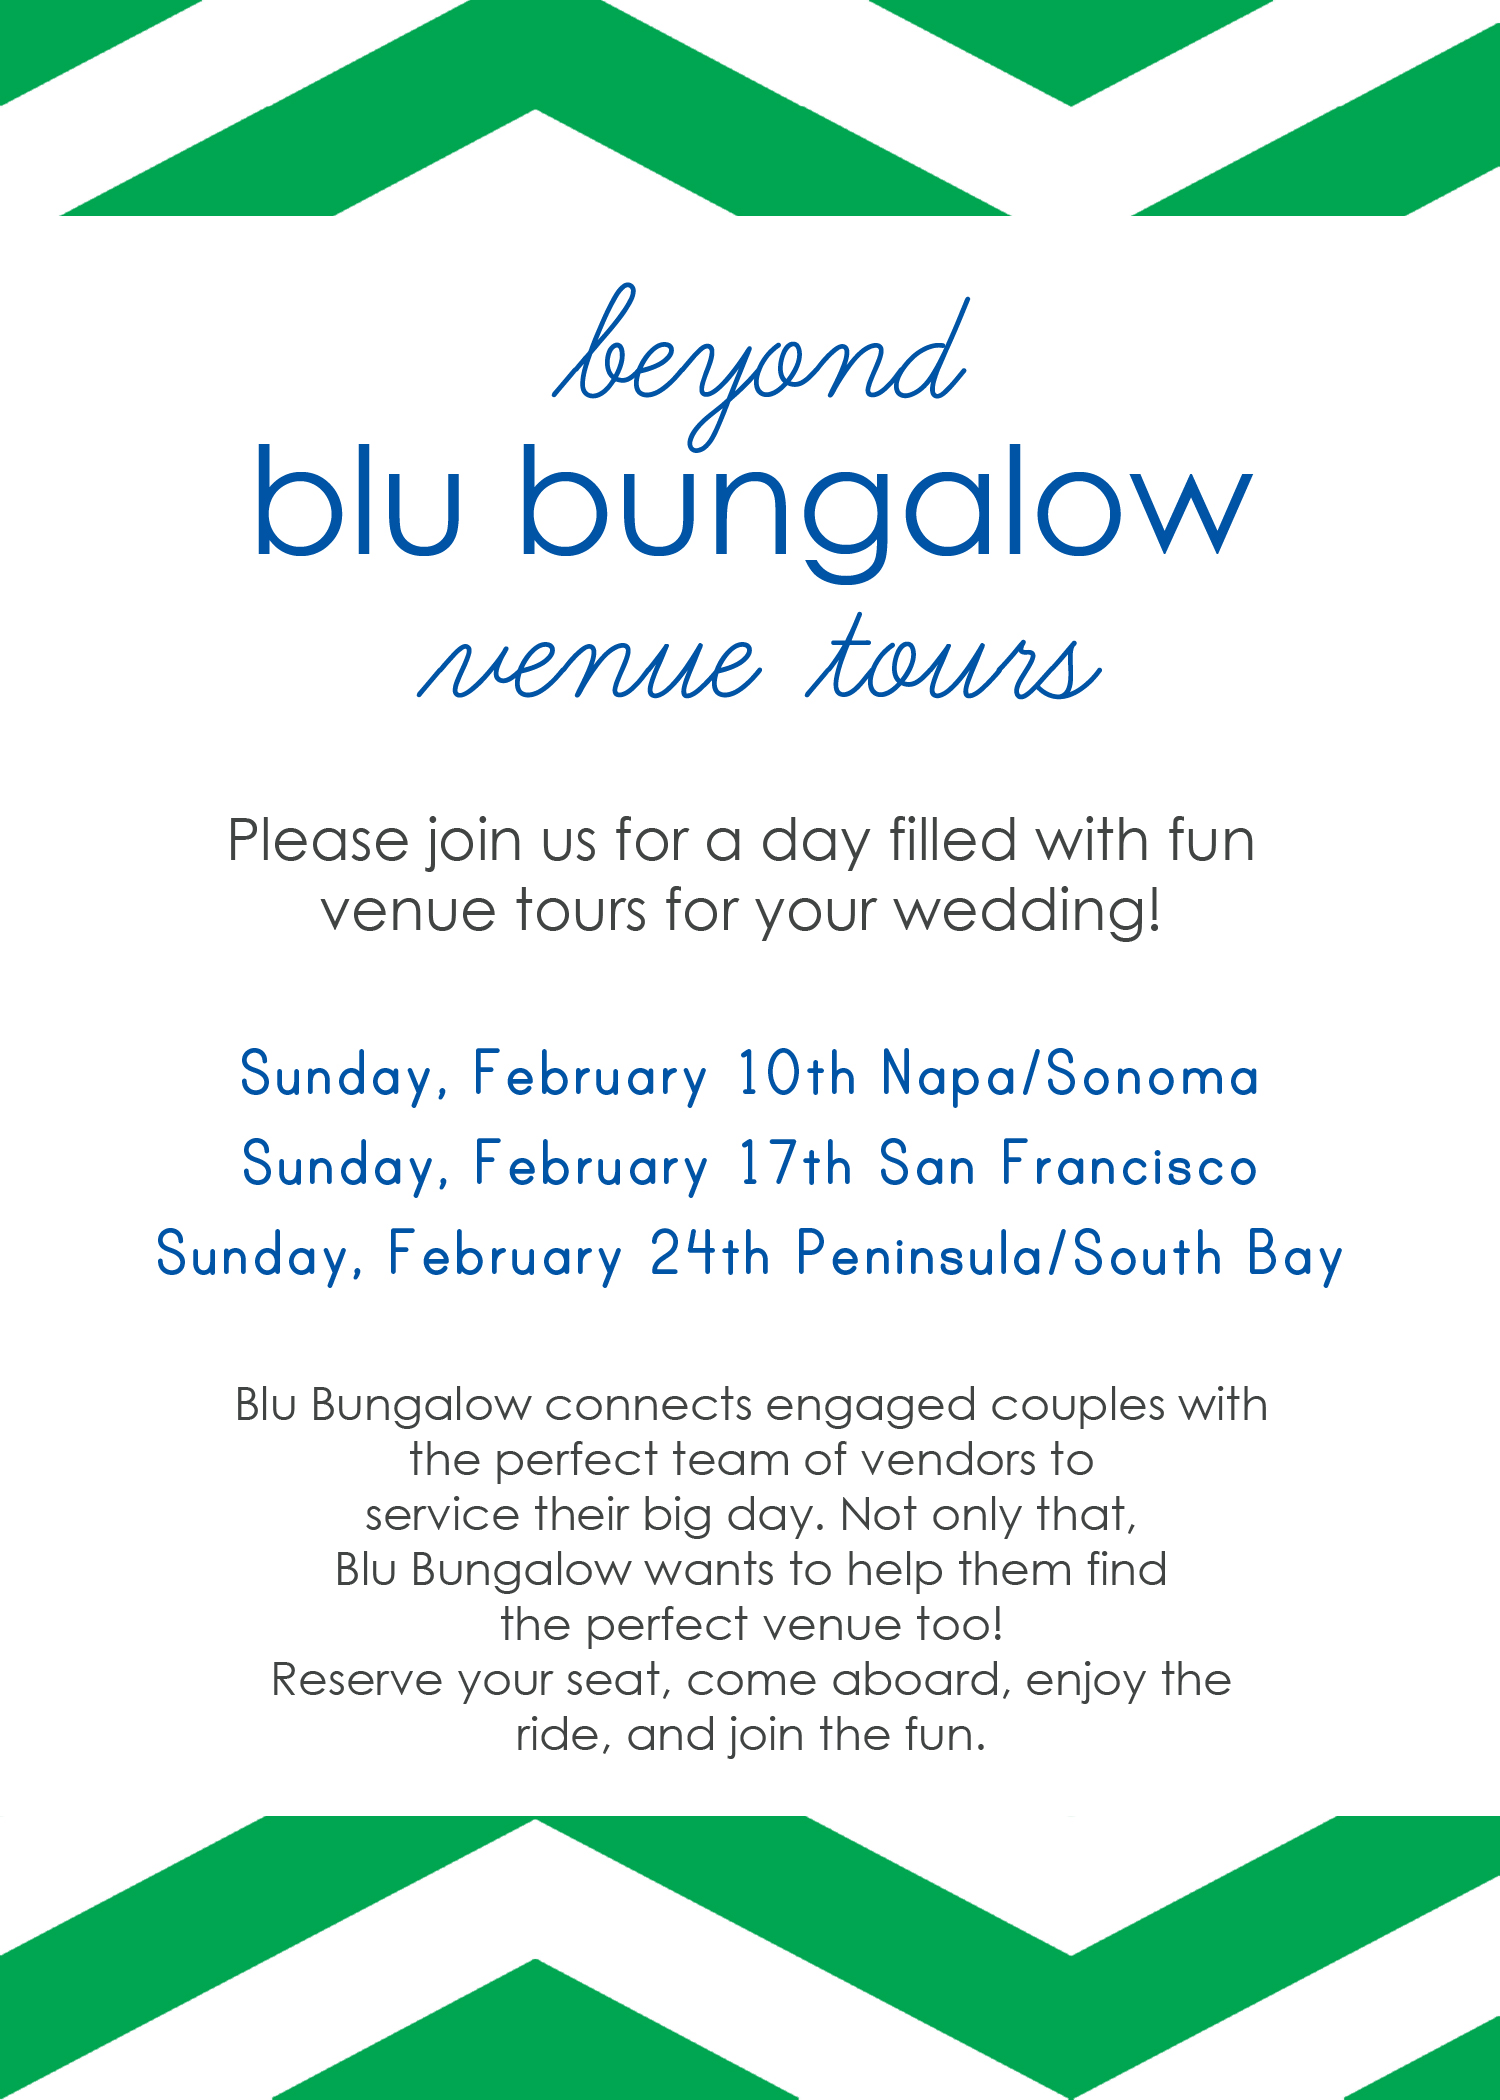 Beyond Blu Bungalow Venue Tours Peninsula tour hosted by Destination wedding planner Mango Muse Events